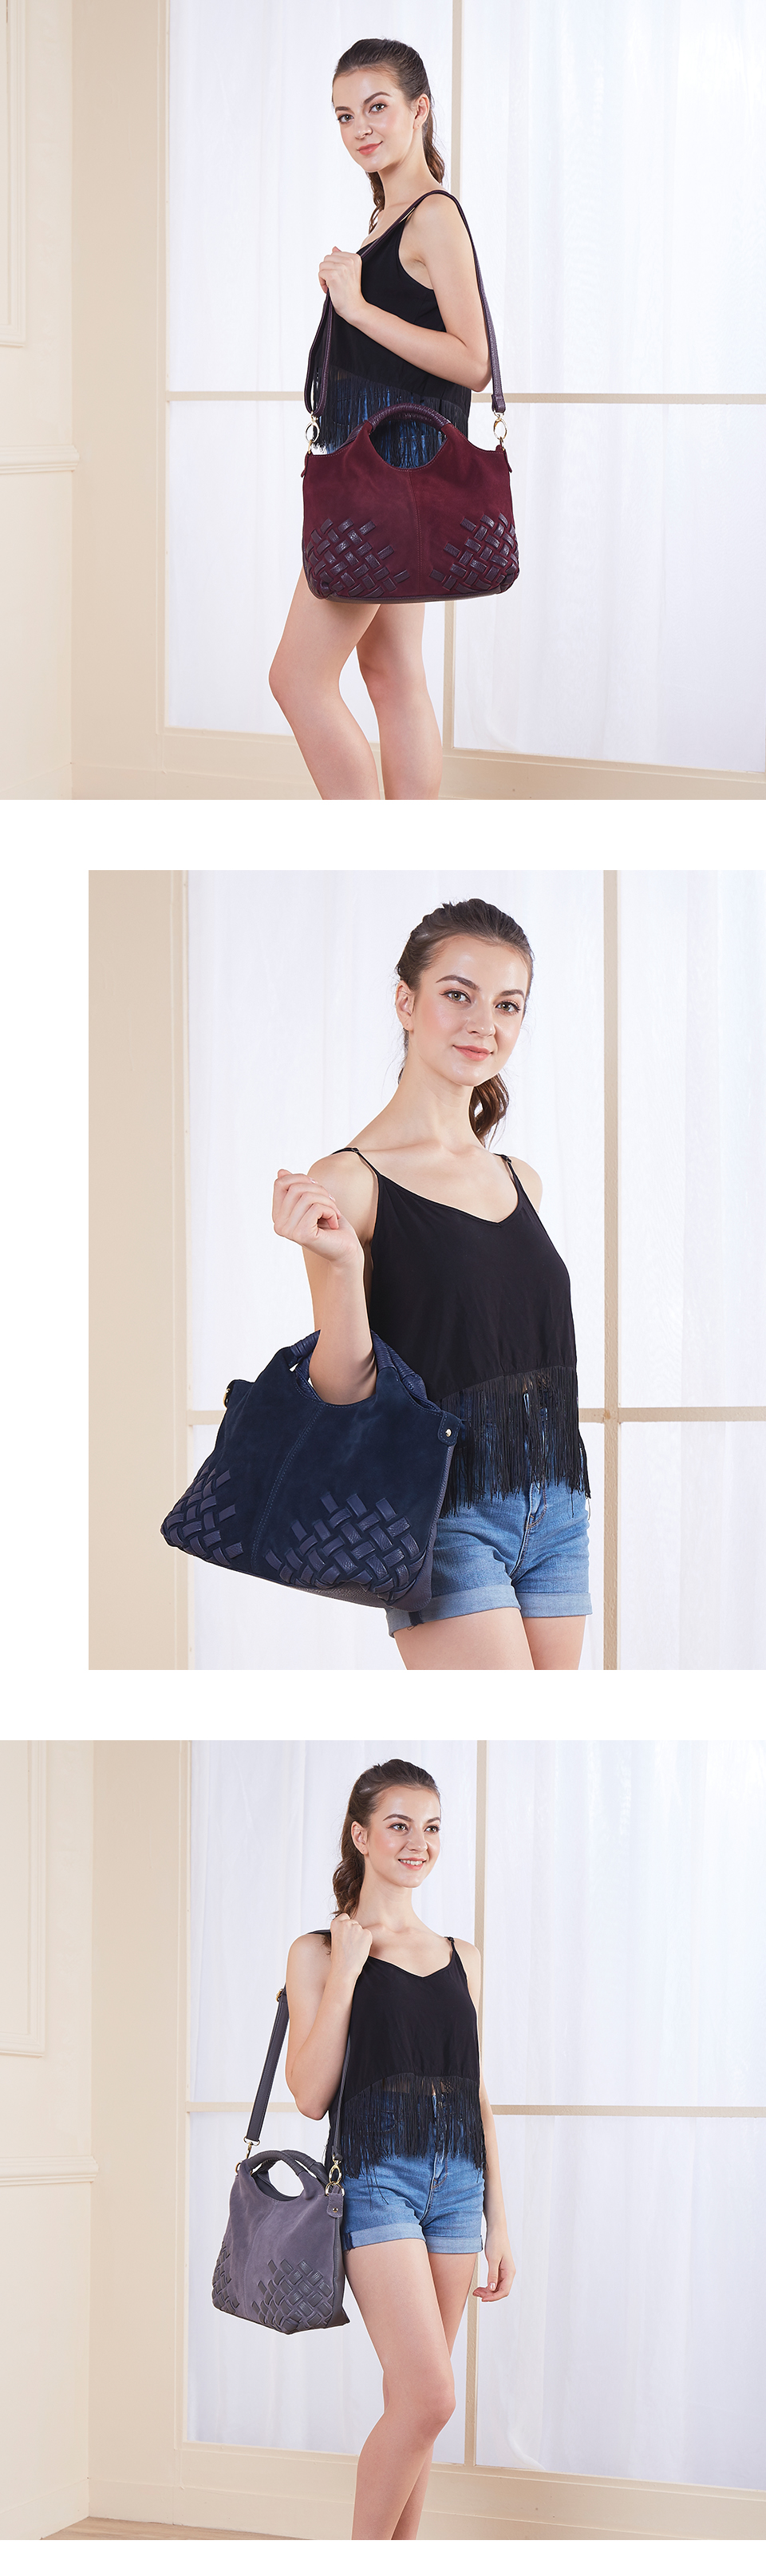 HTB1hXLdXaagSKJjy0Fgq6ARqFXal - Latest Women Weave Suede Split Leather Handbag Female Leisure Casual Lady Crossbody Shoulder Bag Messenger Top-handle Bags Sac